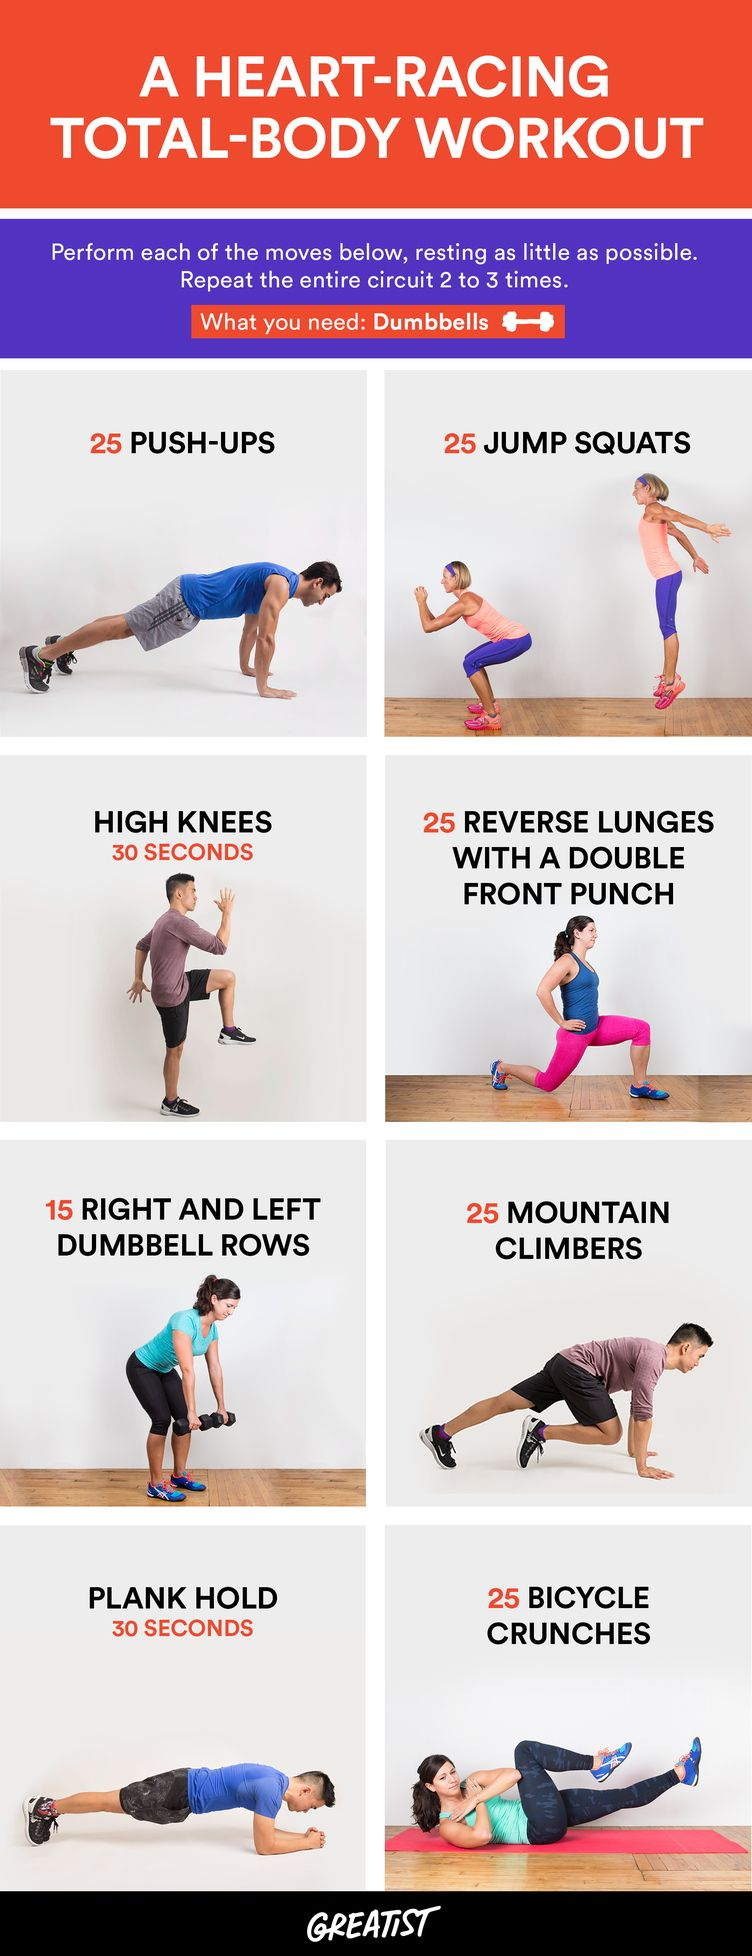 Total-Body Workout to Get Your Heart Racing